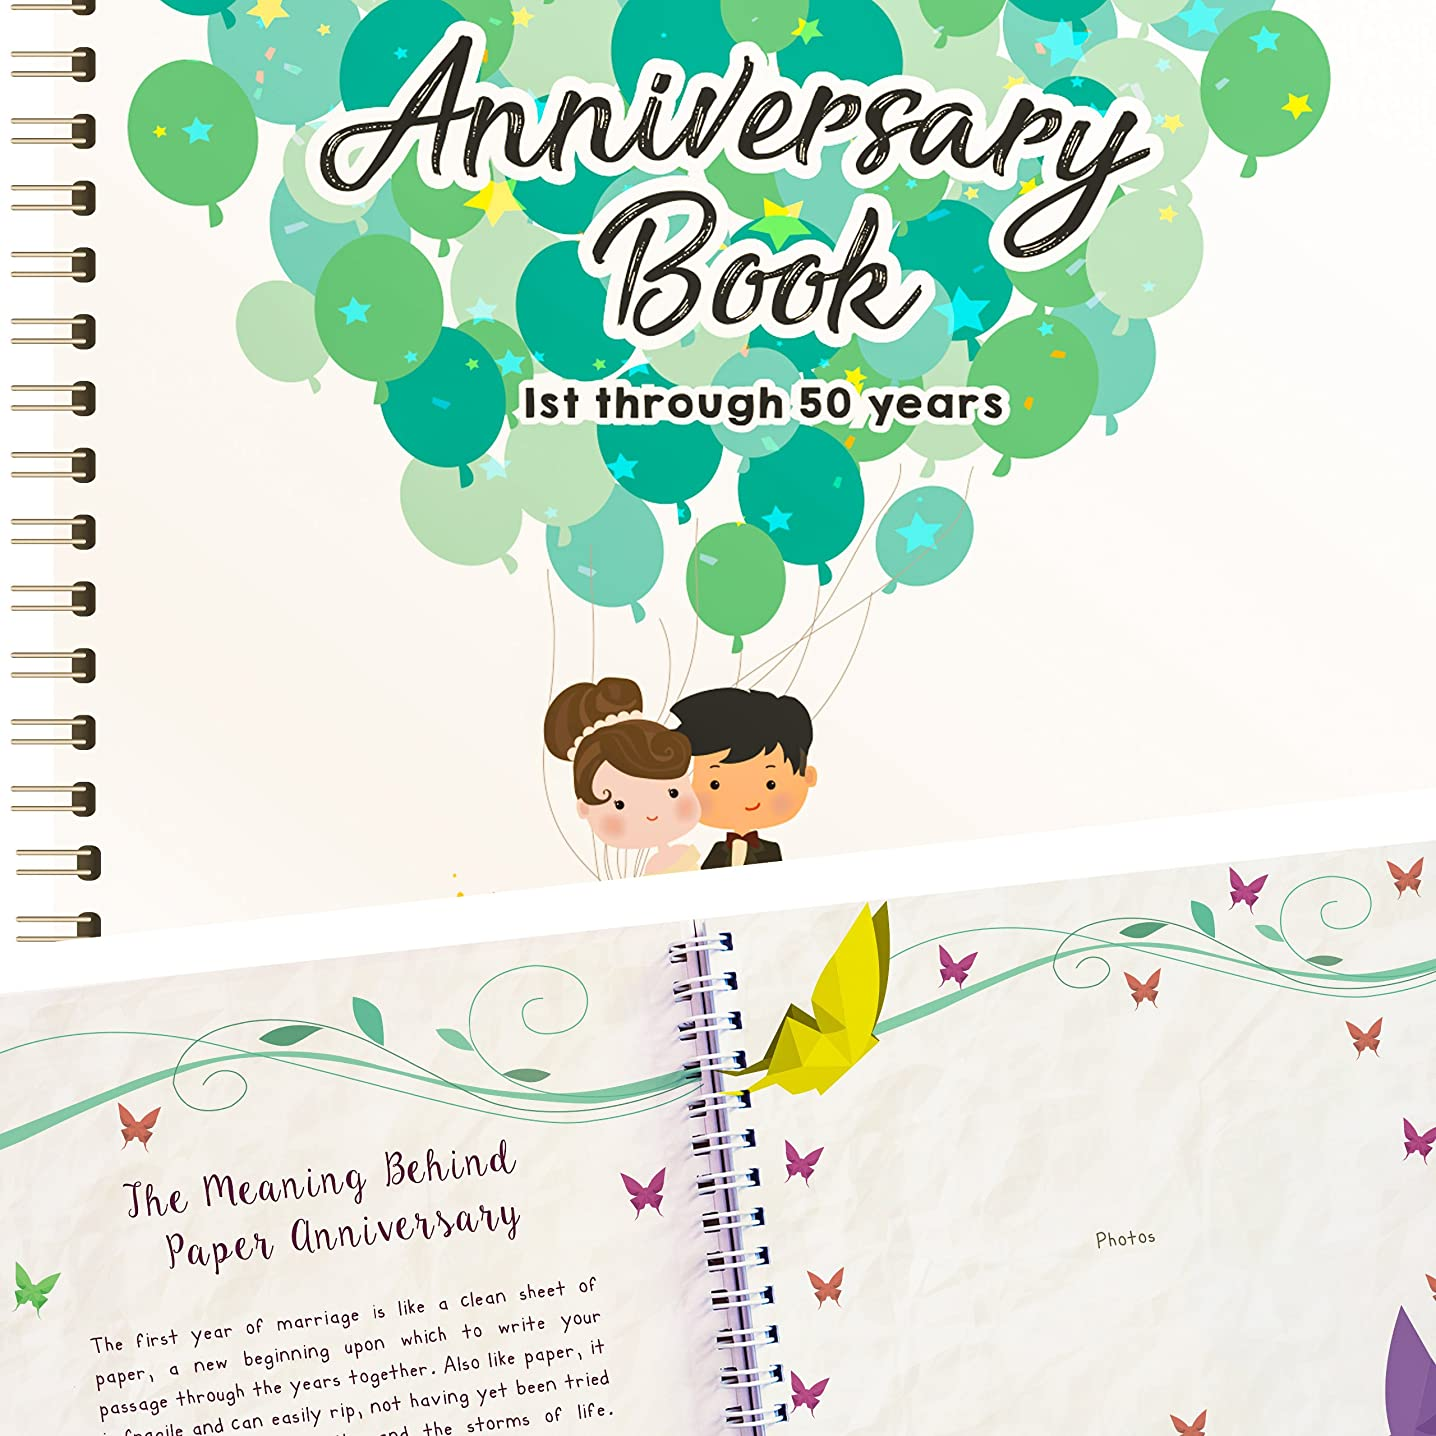 Wedding Anniversary Book - A Hardcover Journal To Document Wedding Anniversaries From The 1st To the 50th Year! Unique Couple Gifts For Him & Her - Personalized Marriage Presents For Husband & Wife!